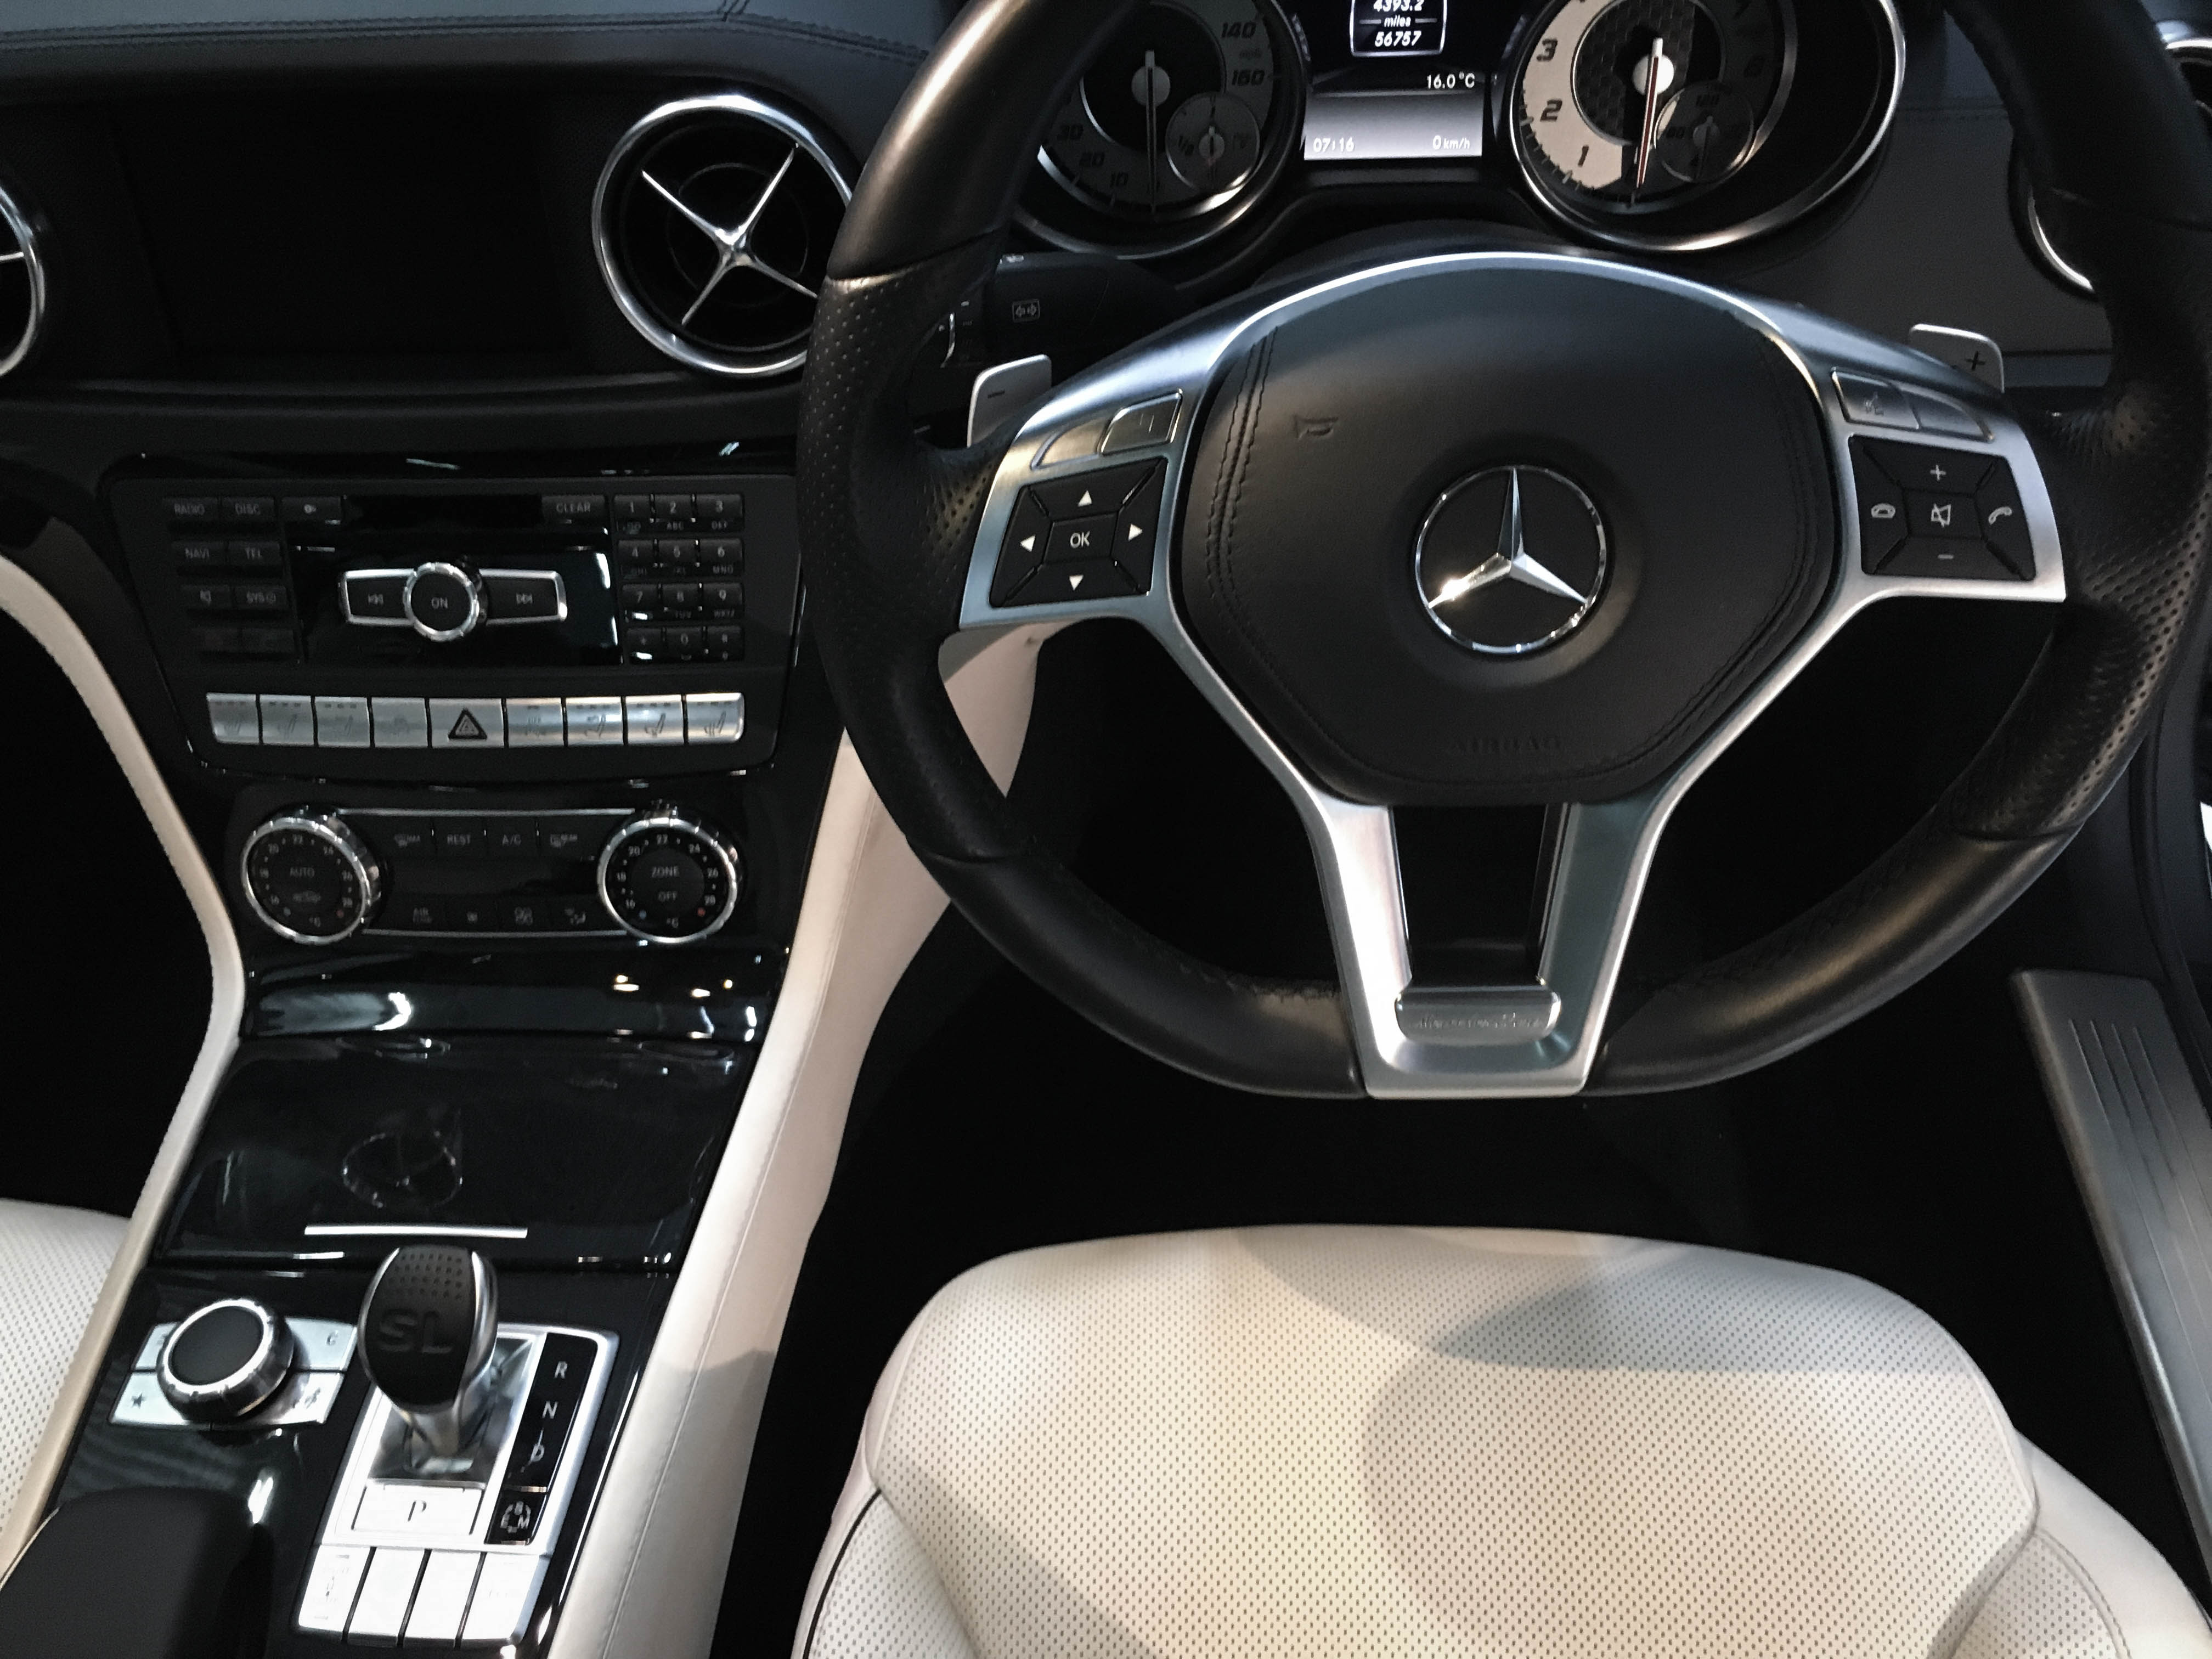 Mercedes SL350 – Interior